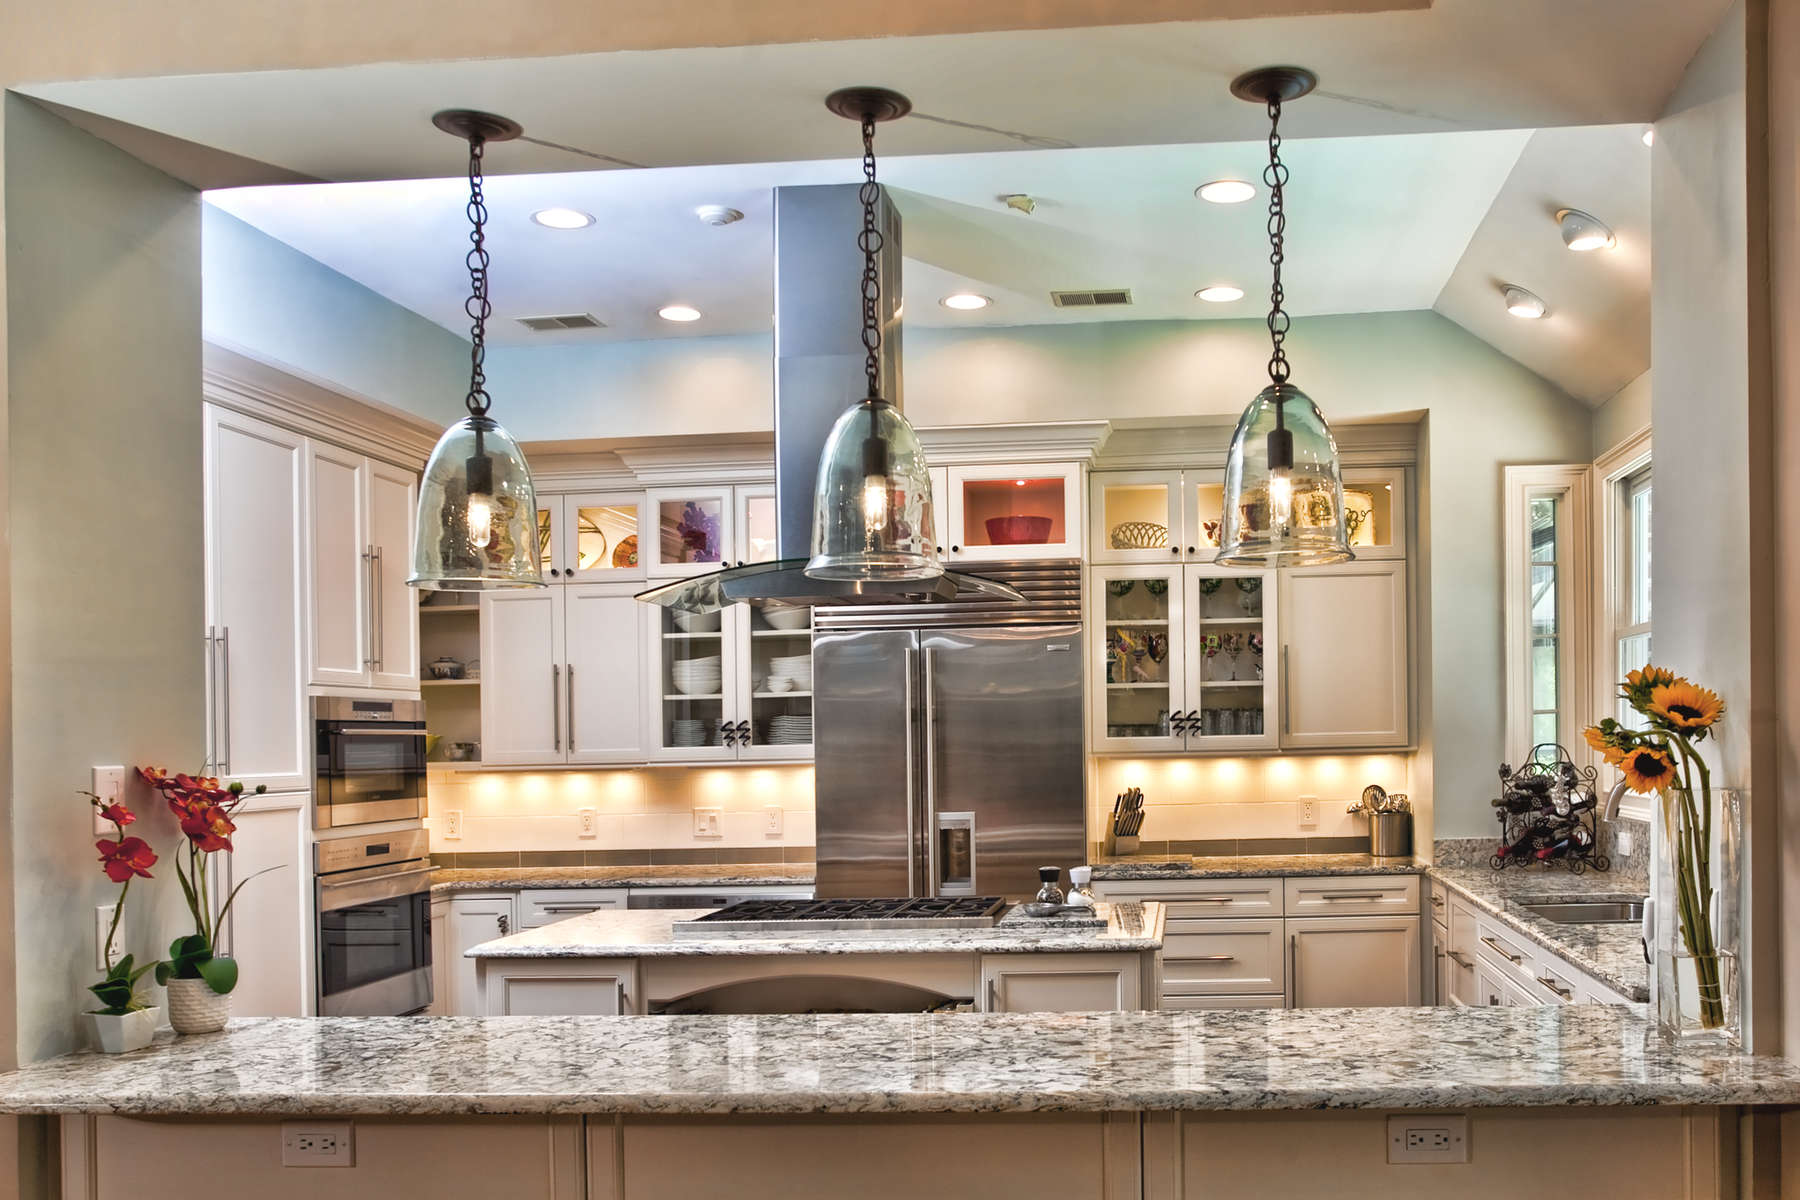 Lighthouse 2014 Nominee - Kitchen Remodel